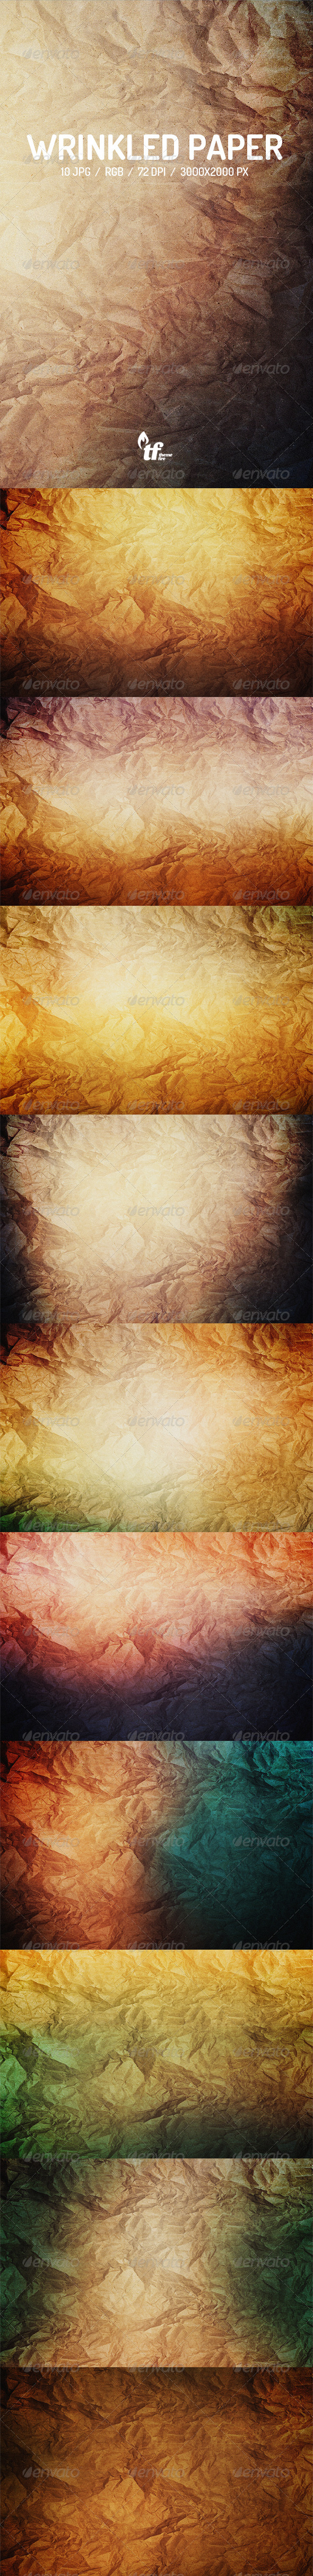 GraphicRiver Wrinkled Paper Backgrounds 7864185